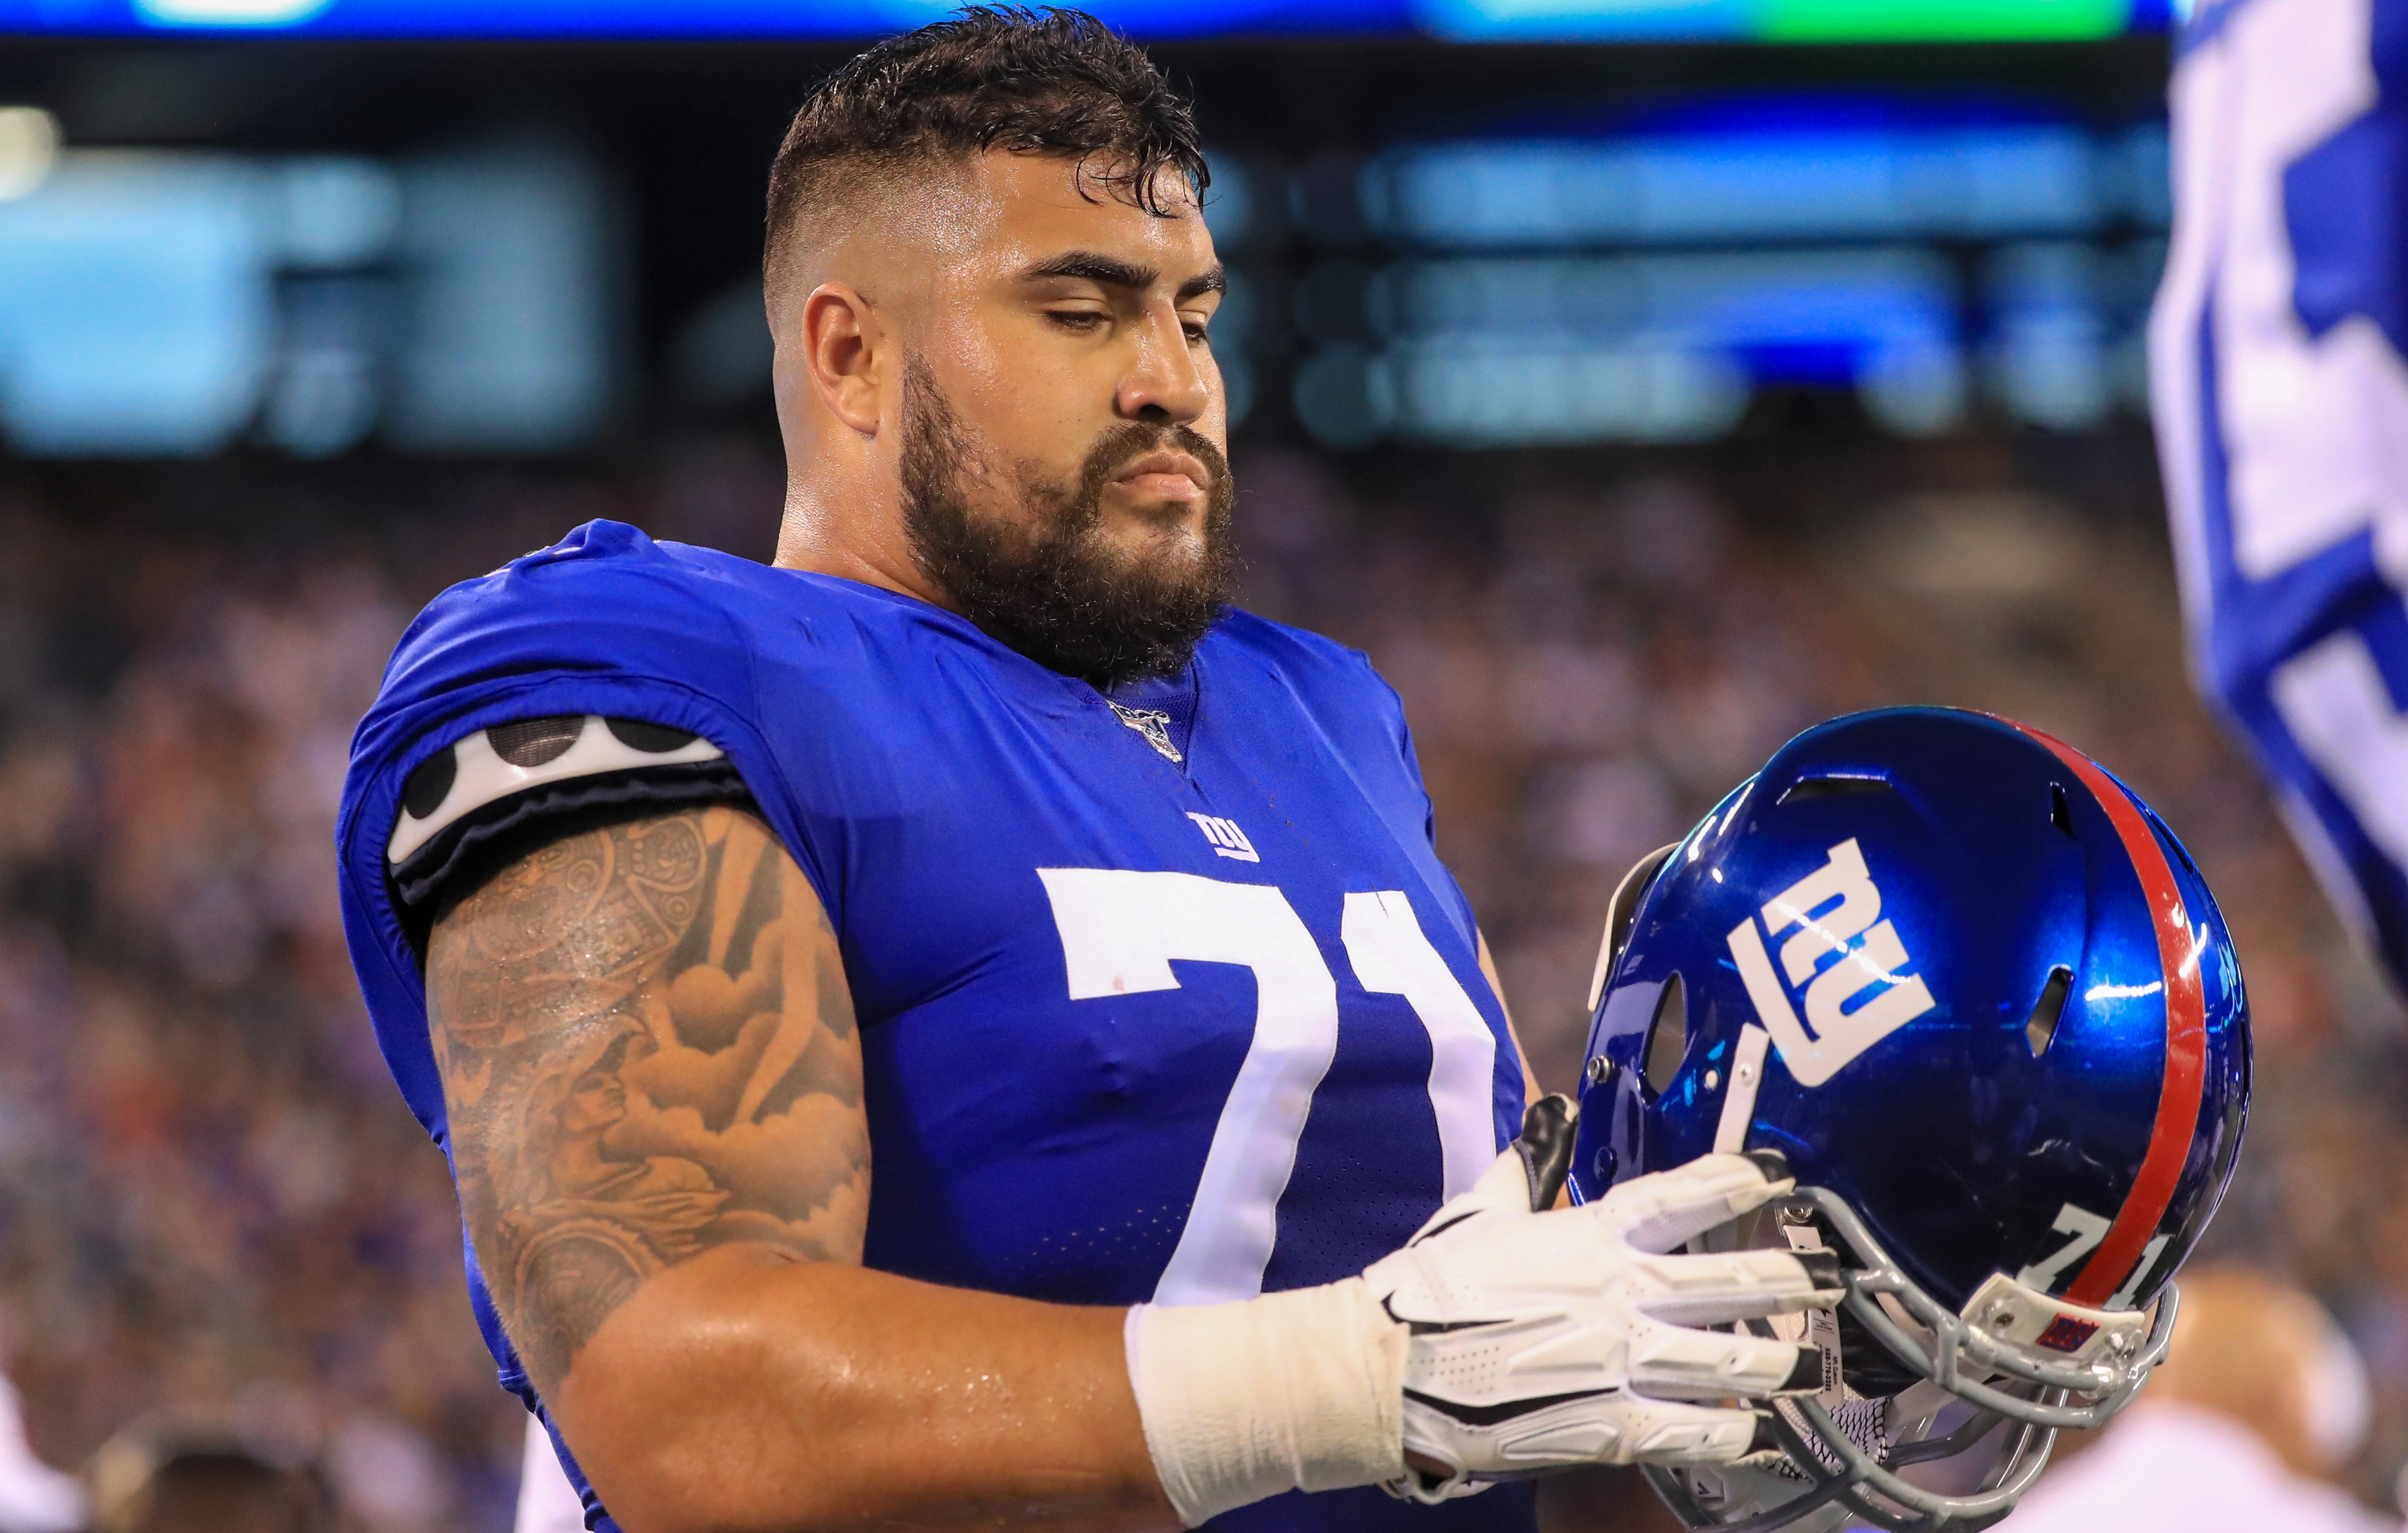 New York Giants guard Will Hernandez checking out his helmet during a game.